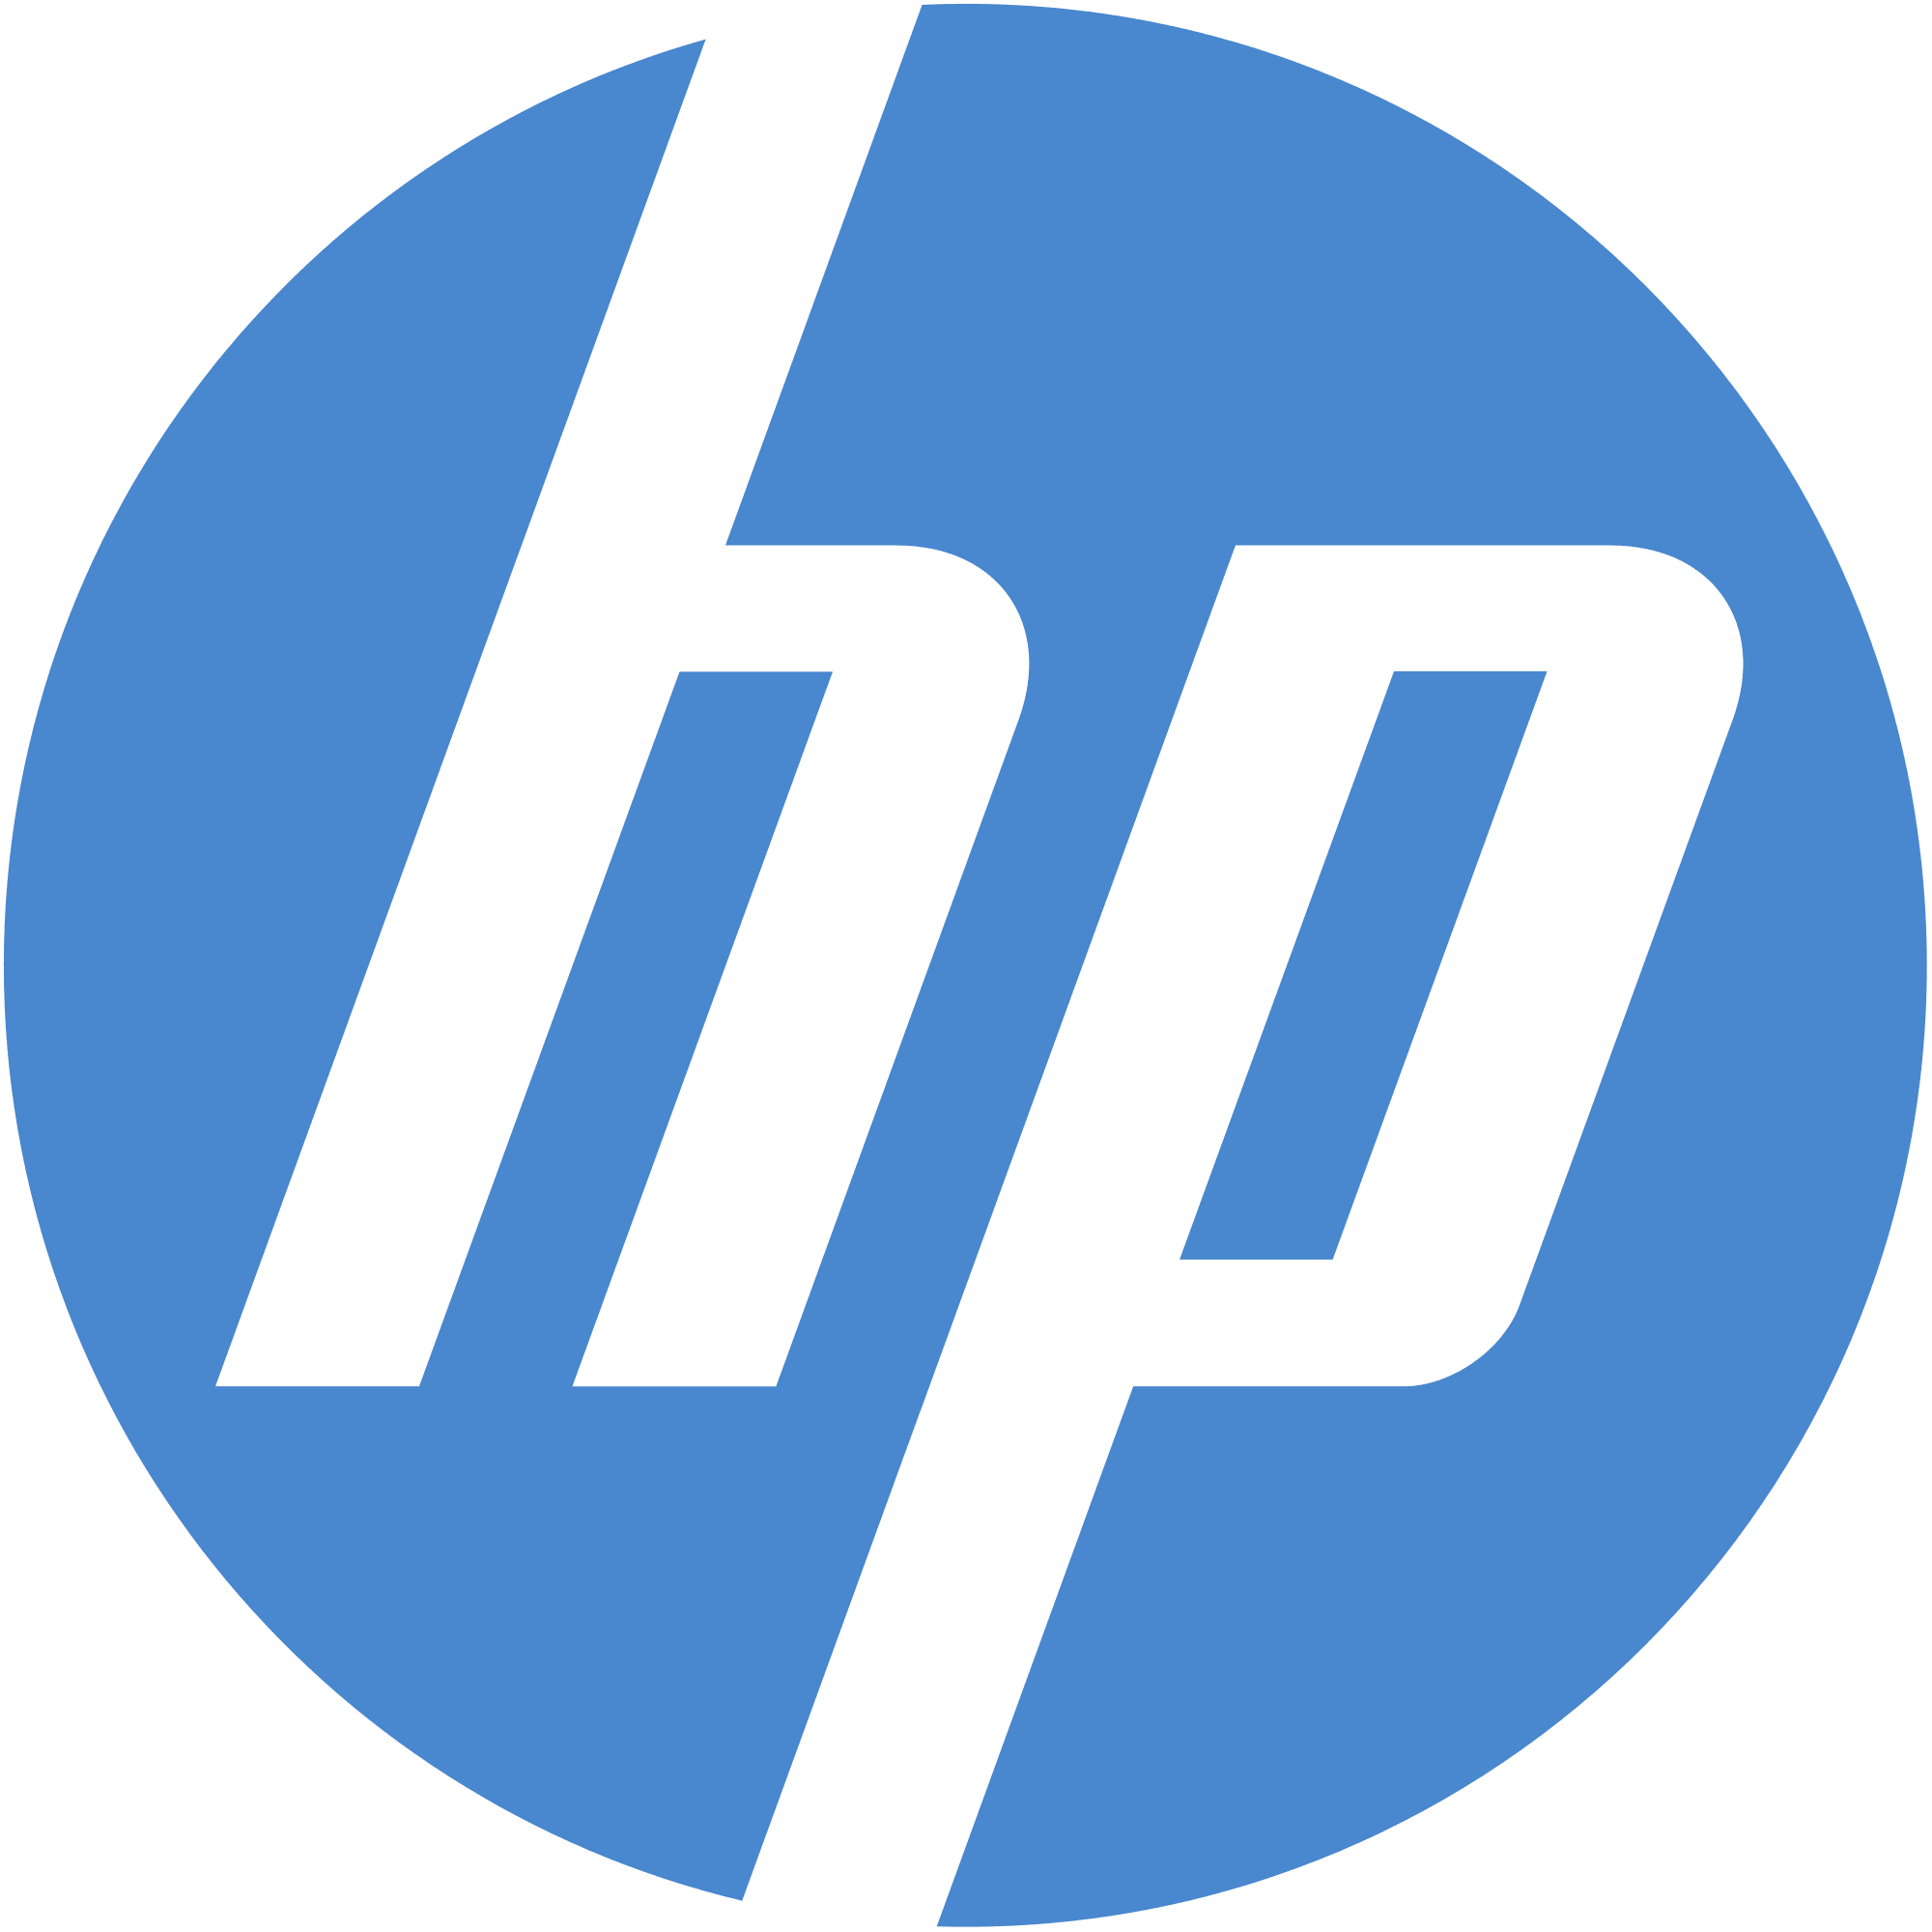 HP Pavilion 27xi 27-inch LED Backlit Monitor drivers icon